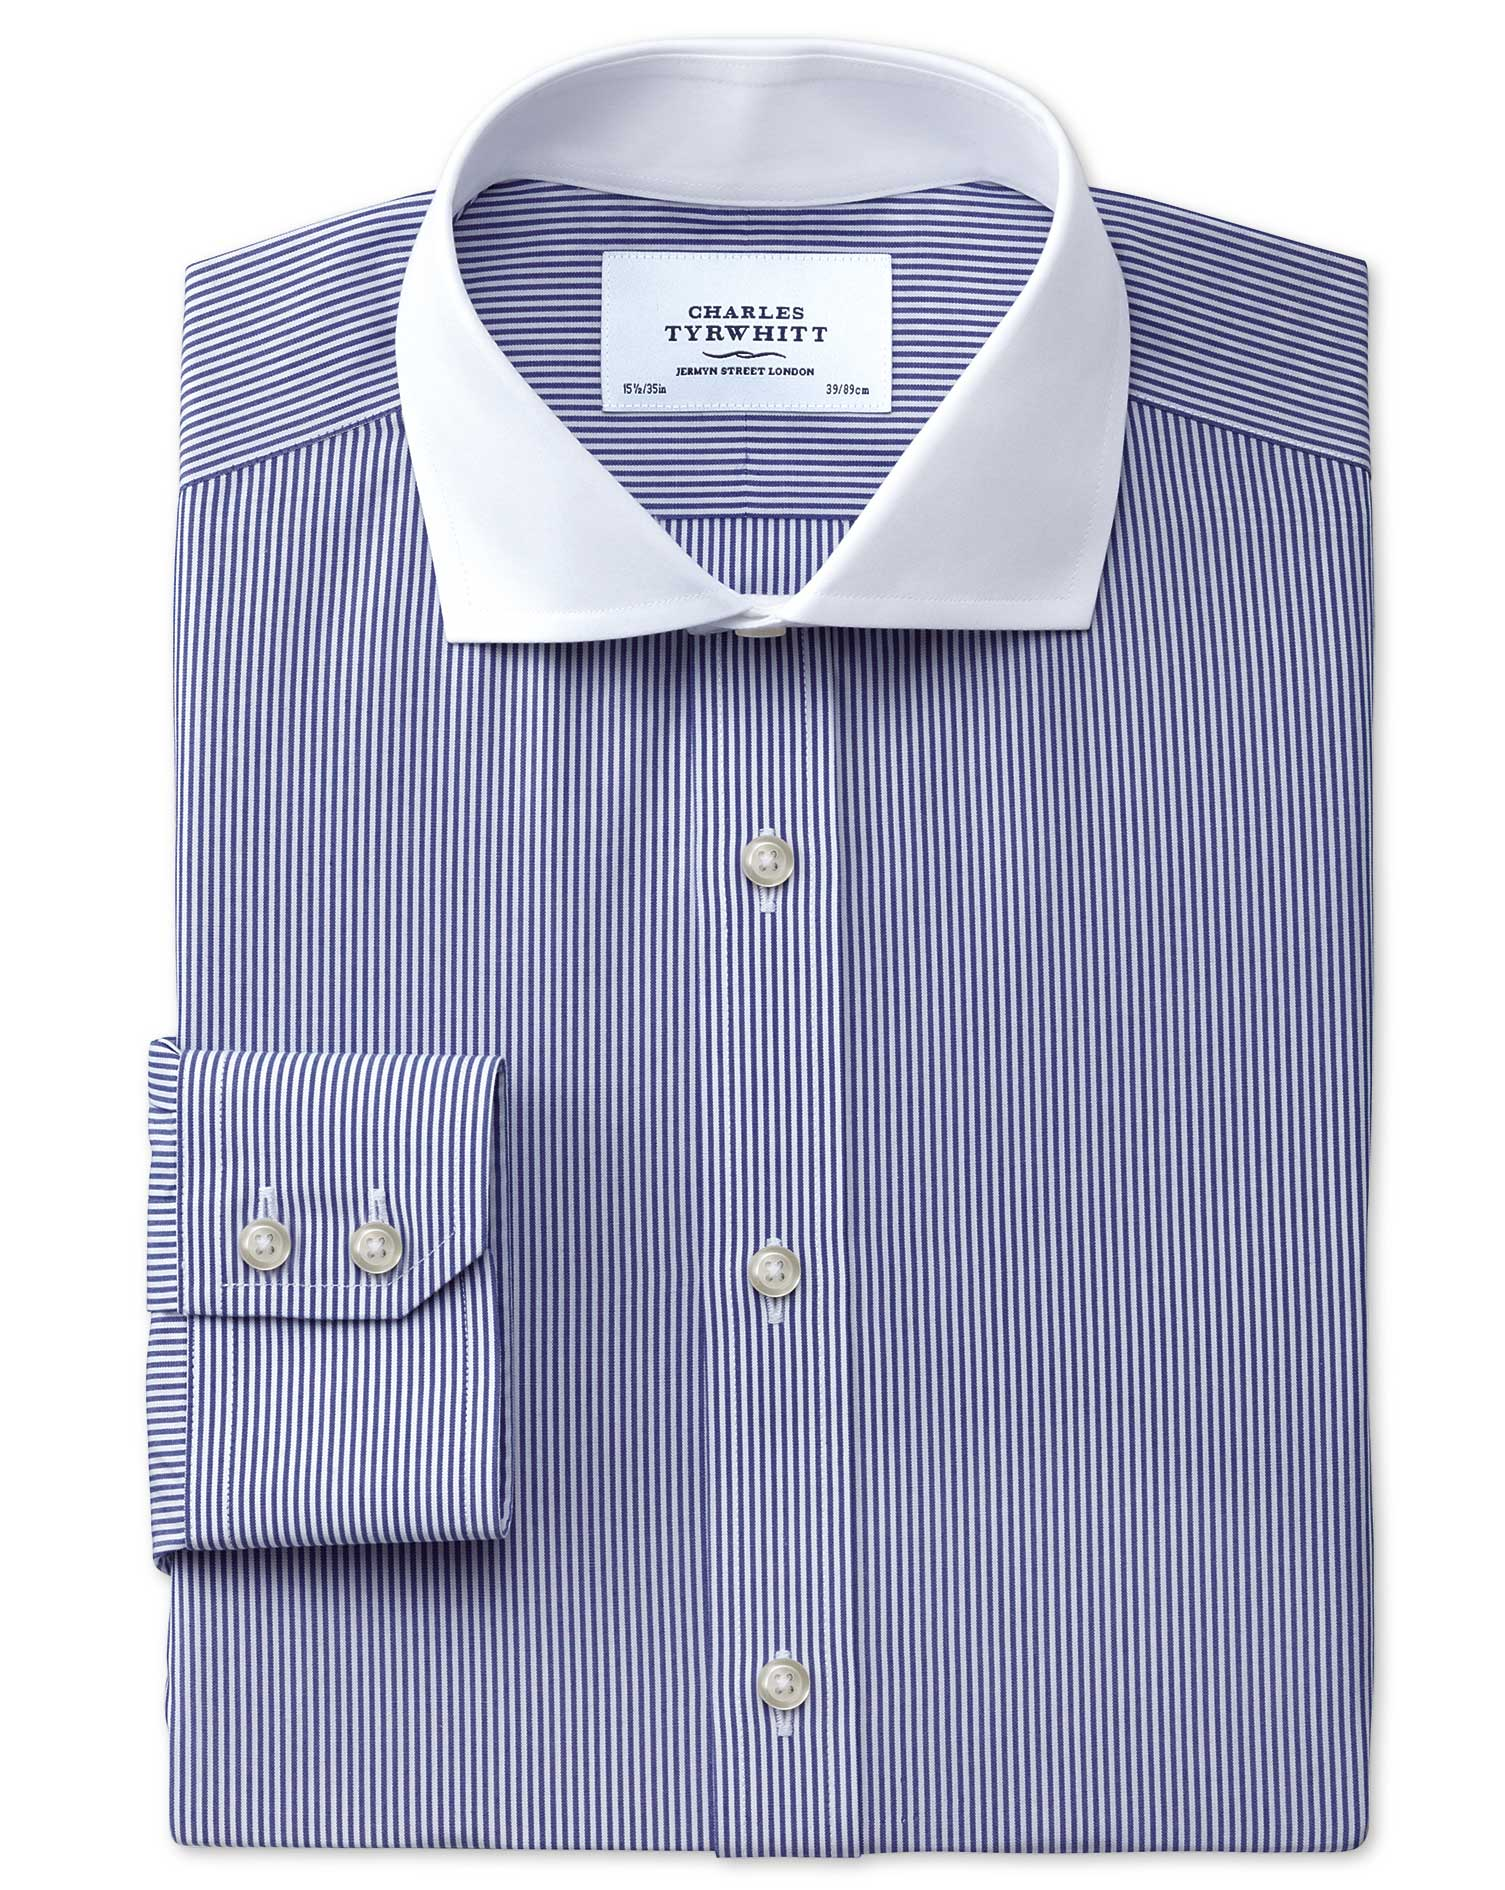 Cutaway Collar | Extra Wide Spread Collar Dress Shirts | Shirts with Buttons on Collar